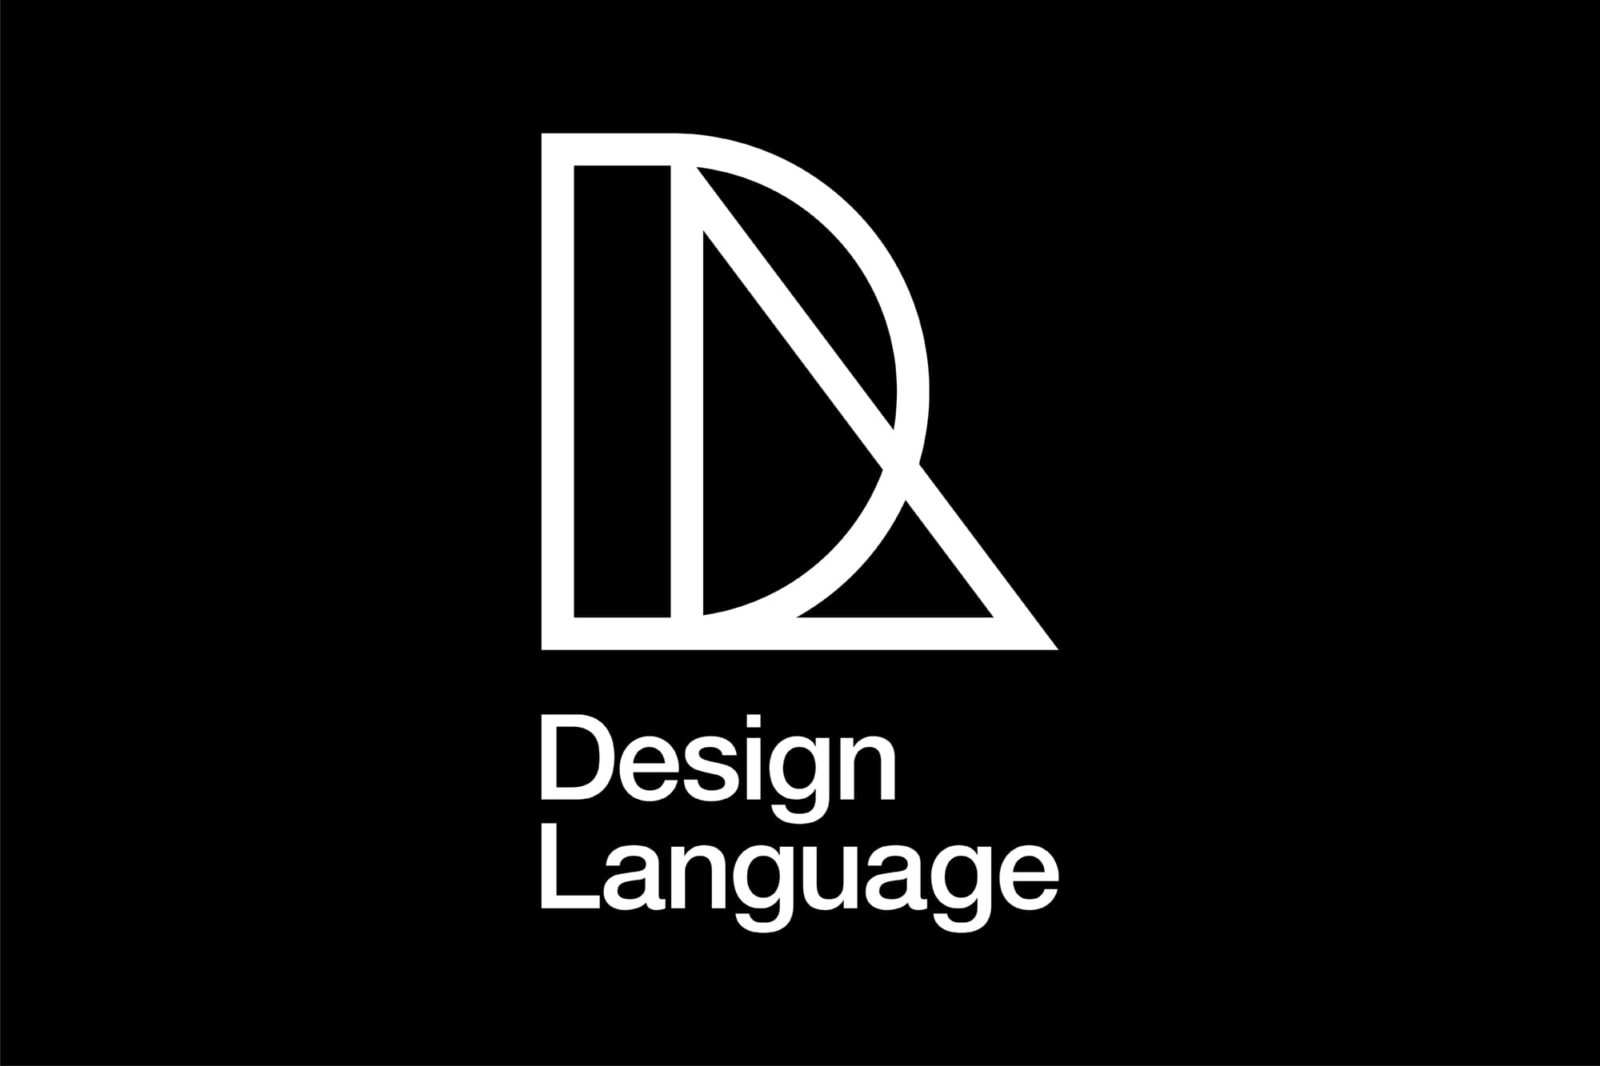 Haller Brun Design Language visual identity basic shapes logo